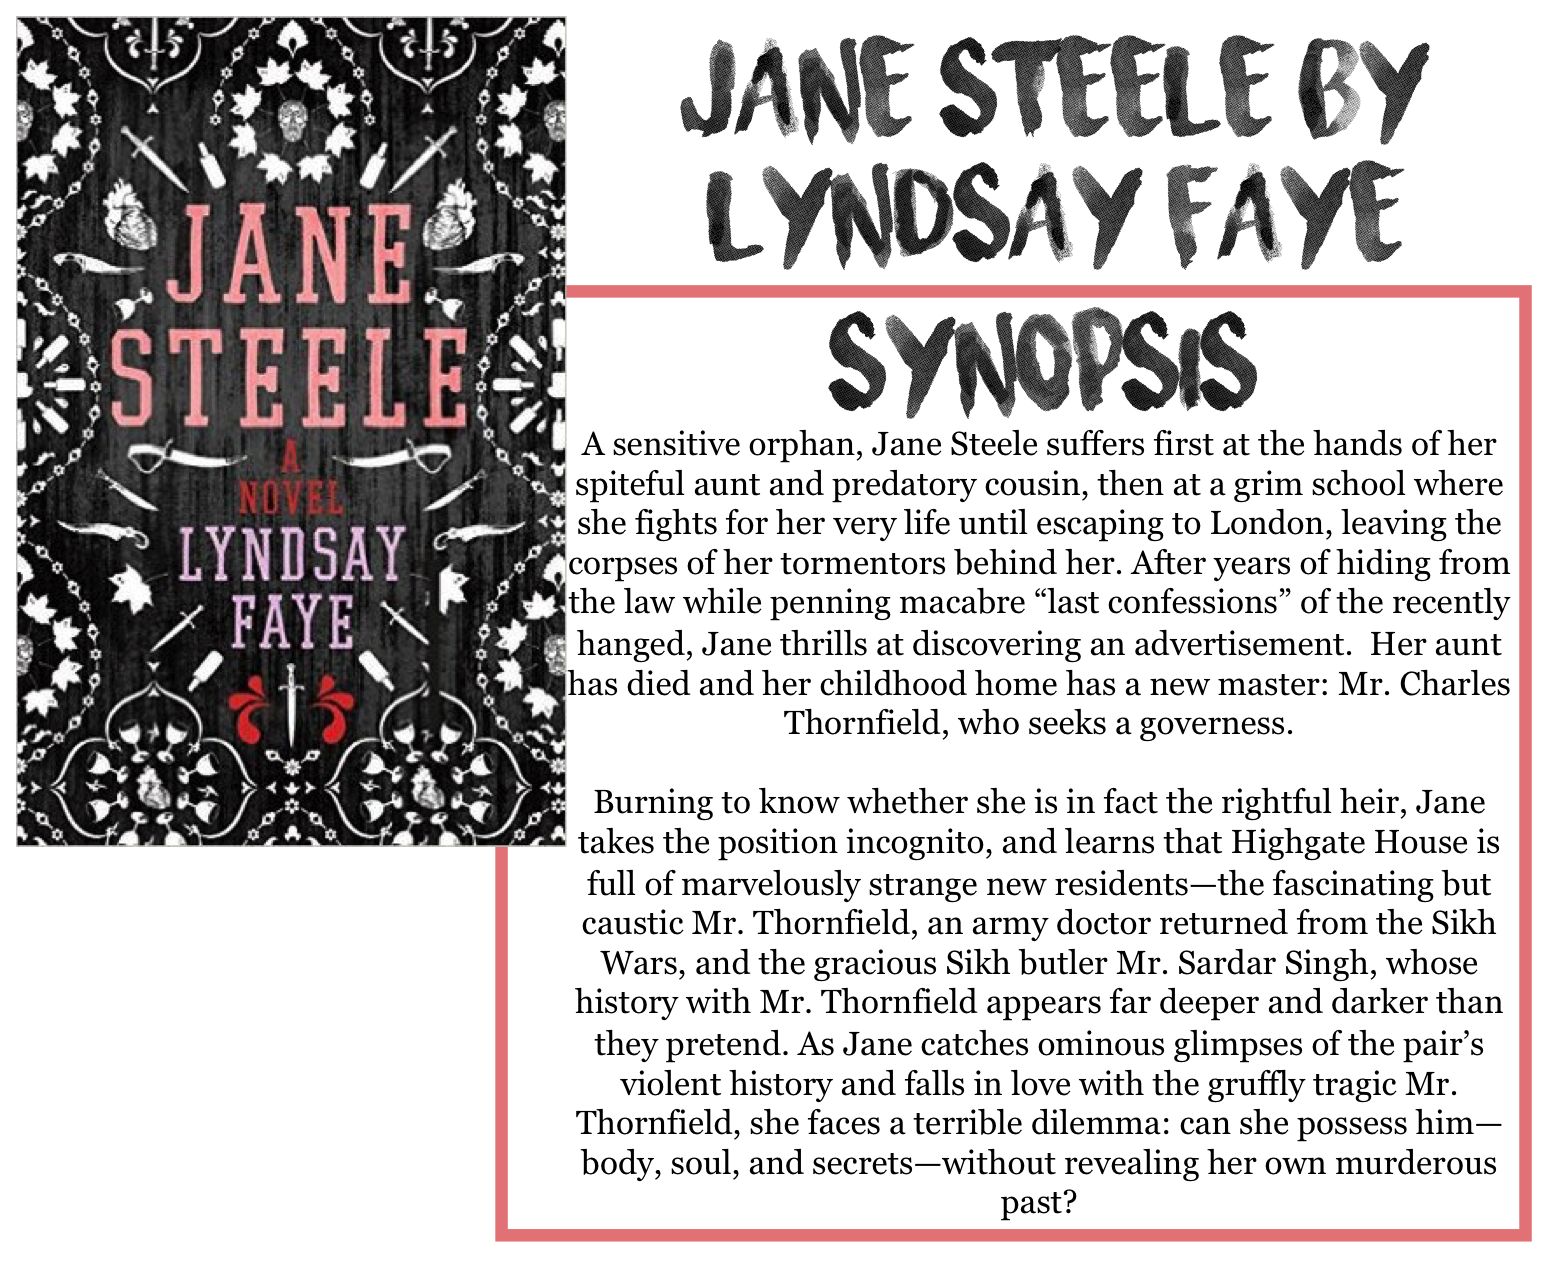 First Let Me Just Say That I Have Not Read Jane Eyre So Naturally Cannot Comment On This Books Likeness Or Faithfulness In Terms Of A Retelling